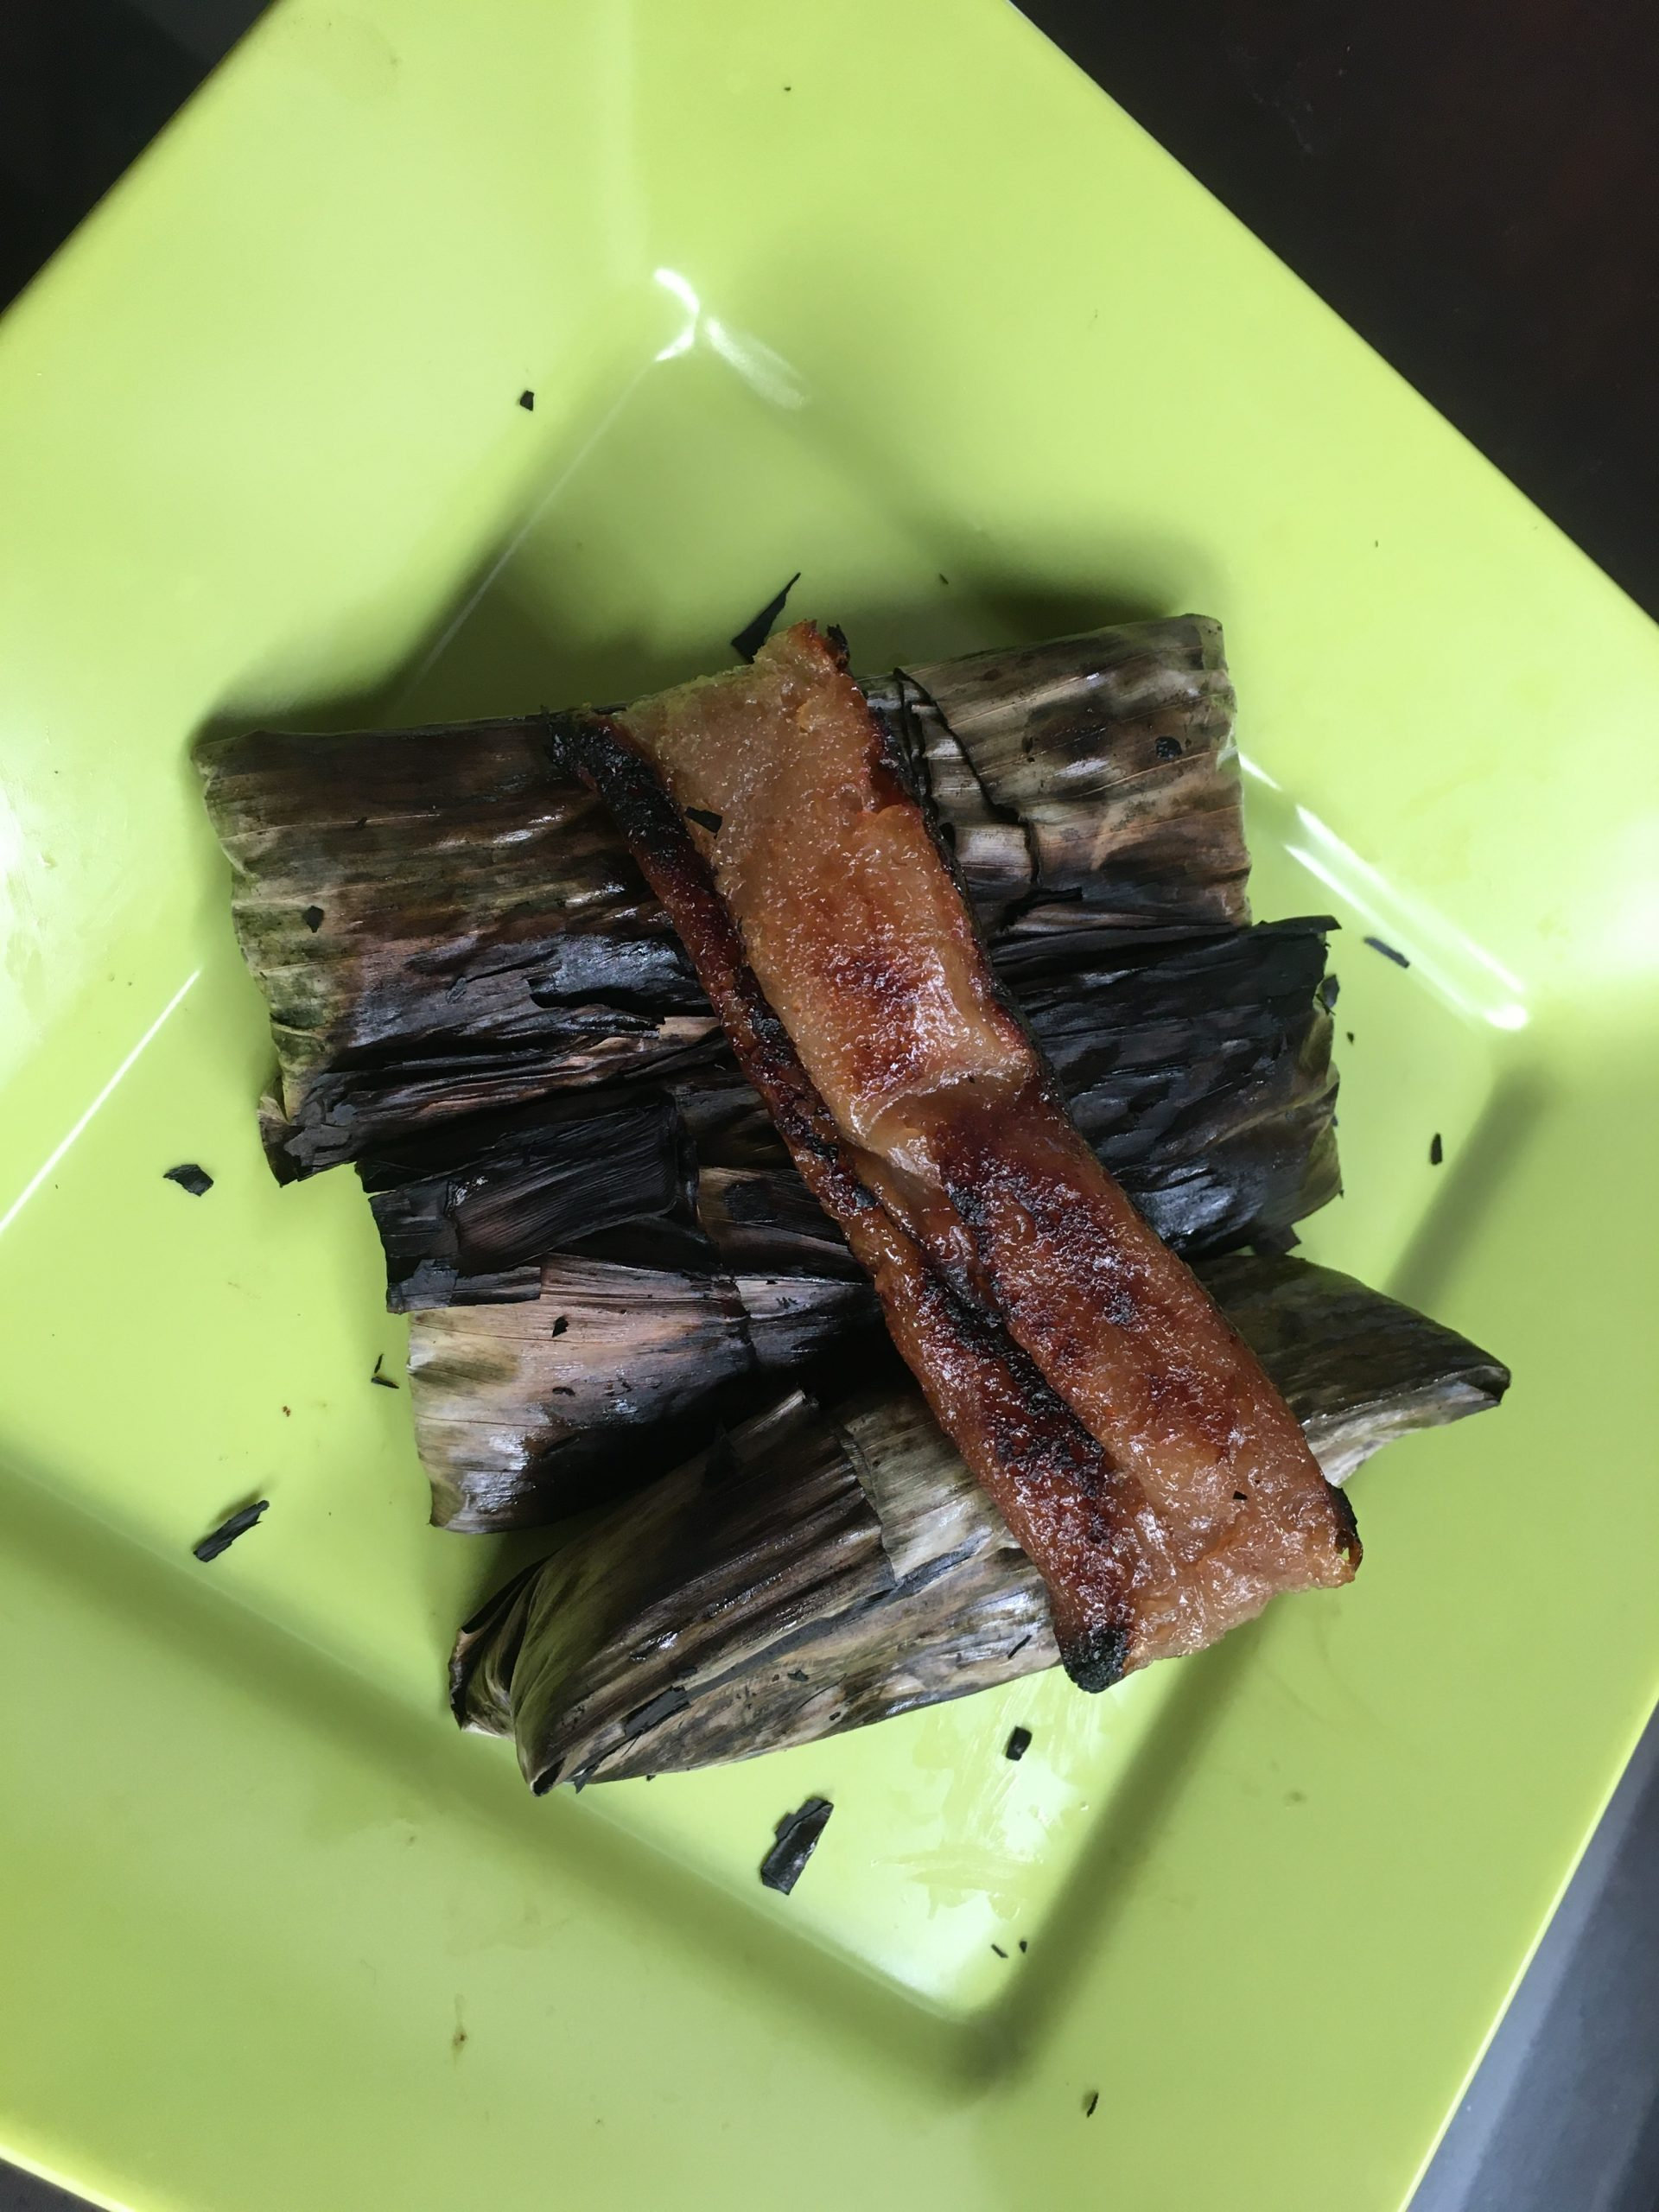 Wrapped tupig with on a green plate topped with an unwrapped tupig.